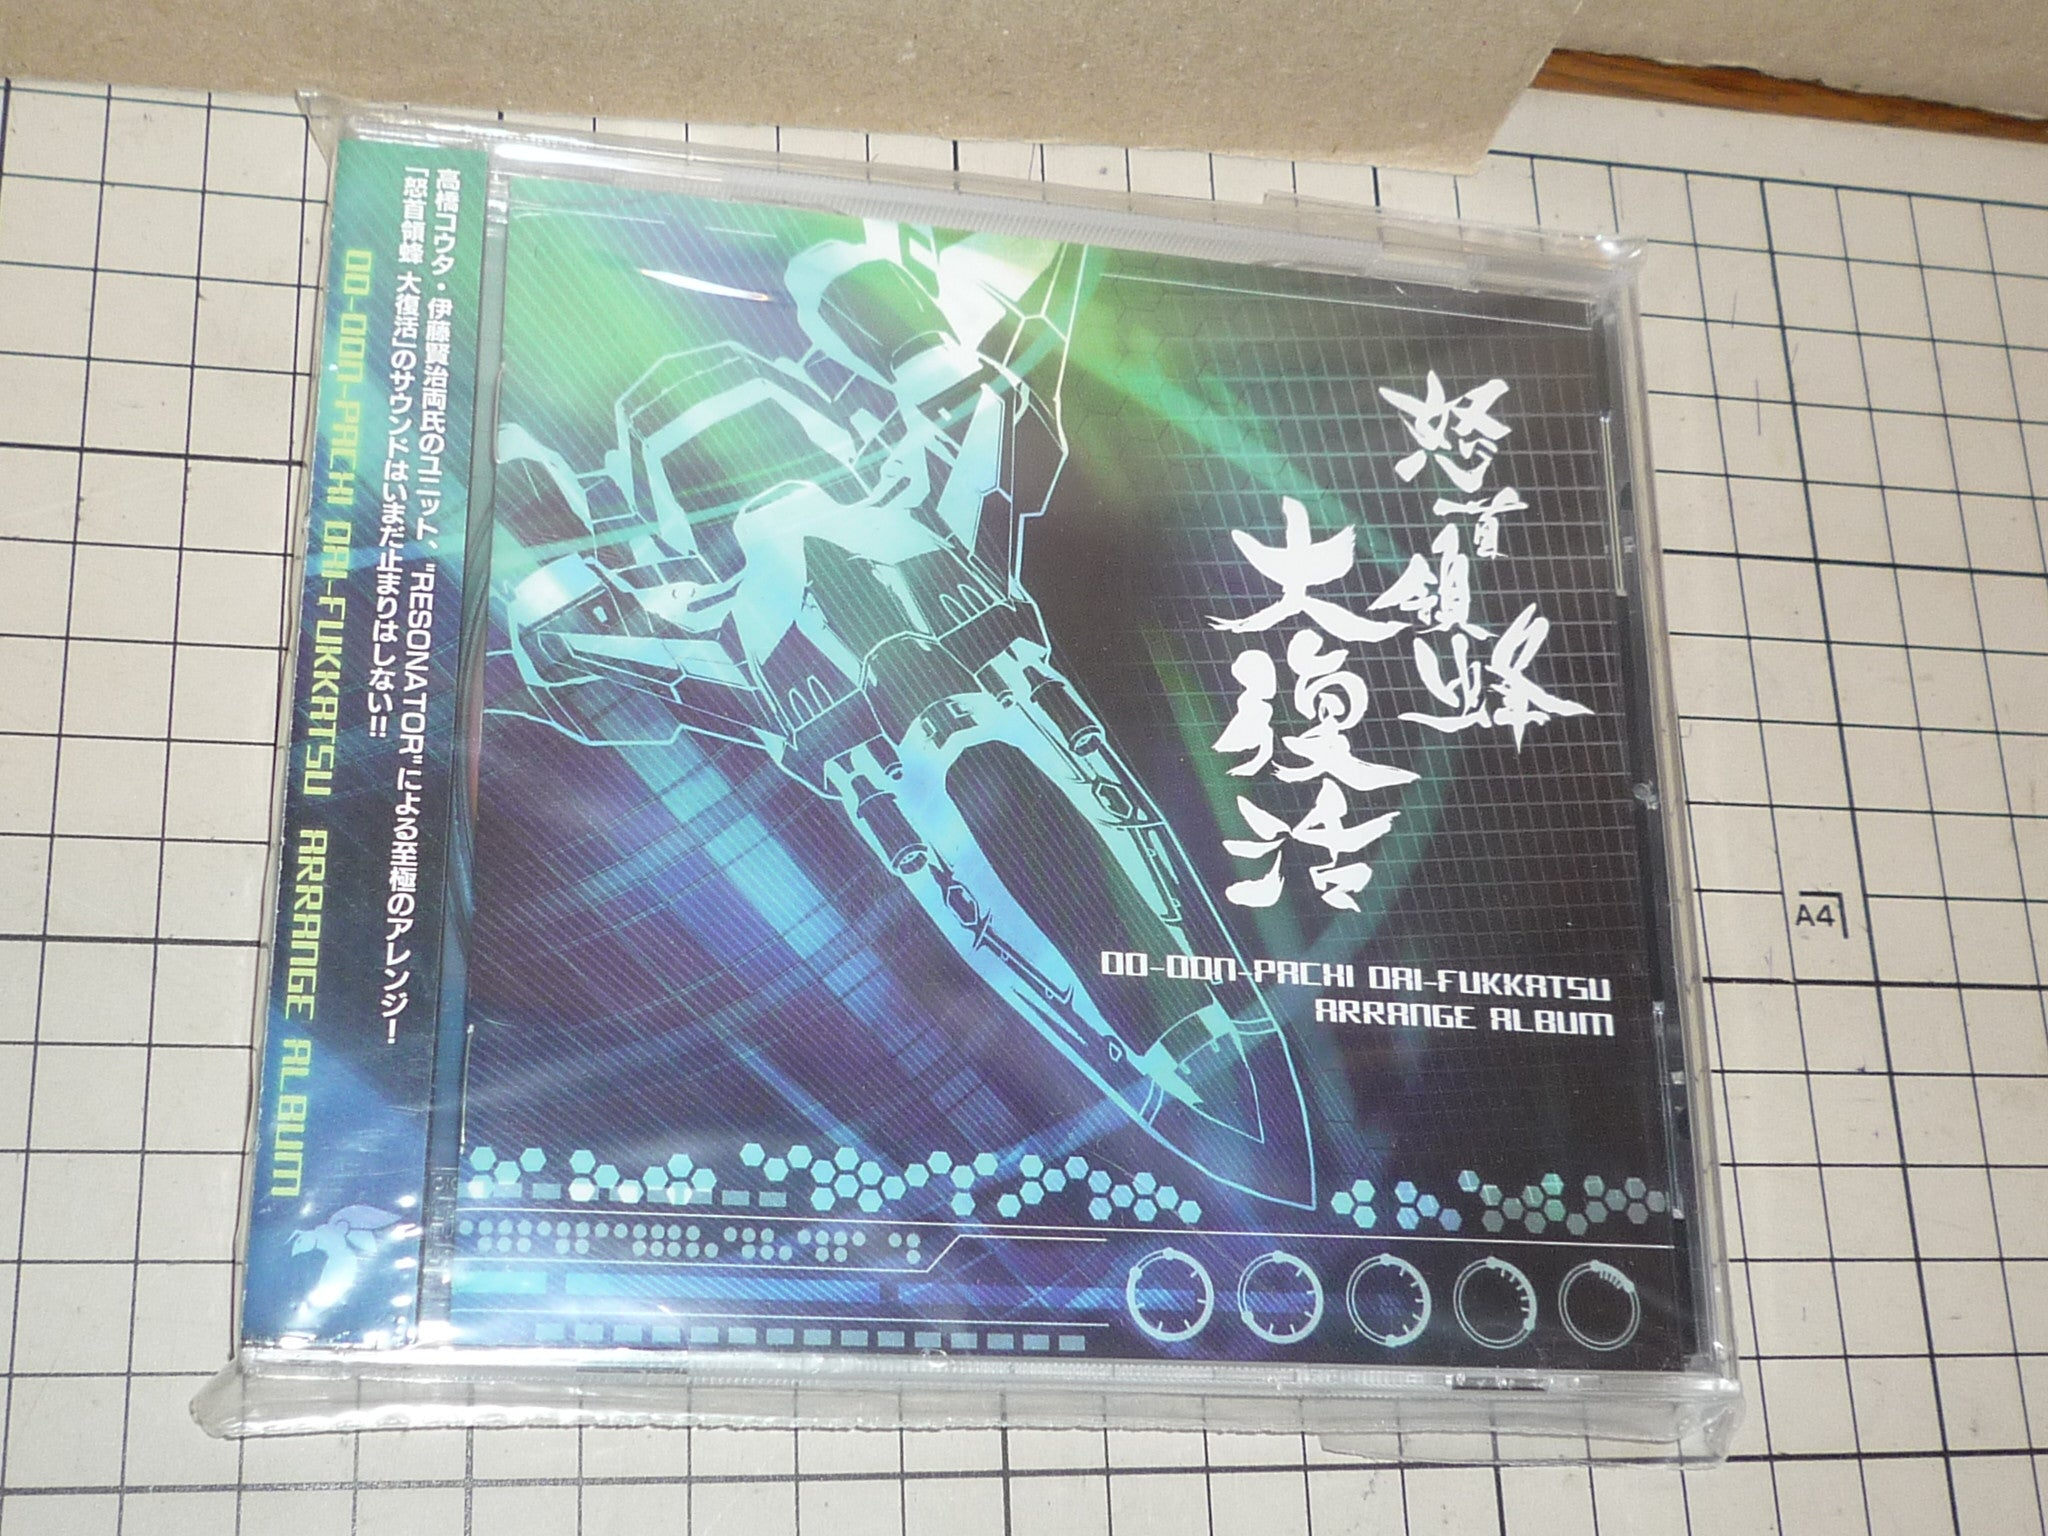 dodonpachi daifukkatsu soundtrack original japanese cd